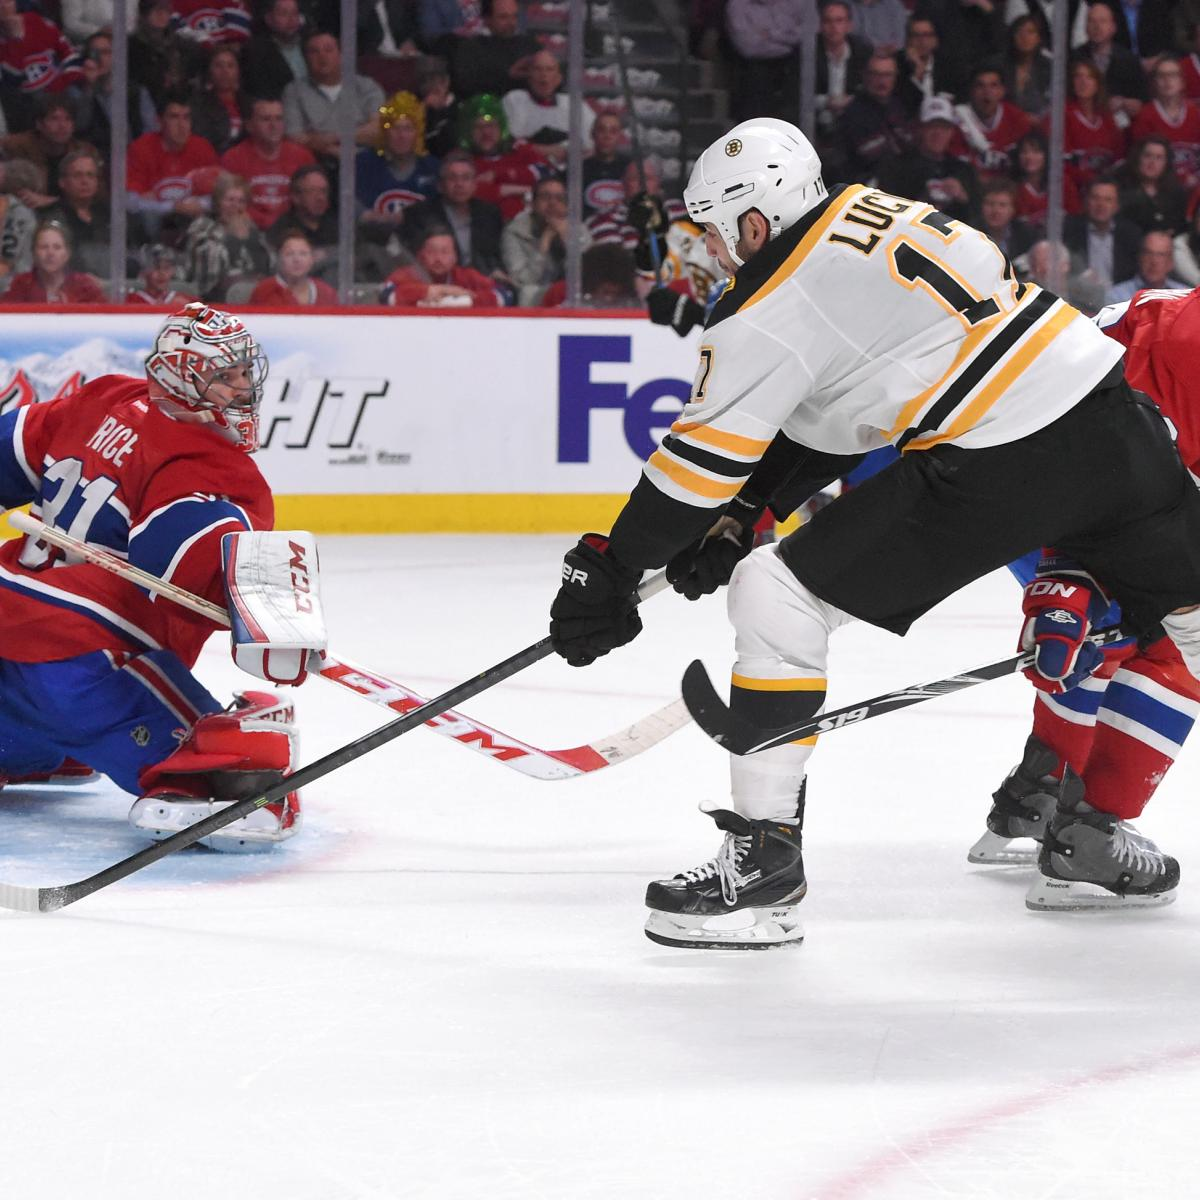 Boston Bruins Vs. Montreal Canadiens Game 4: Live Score